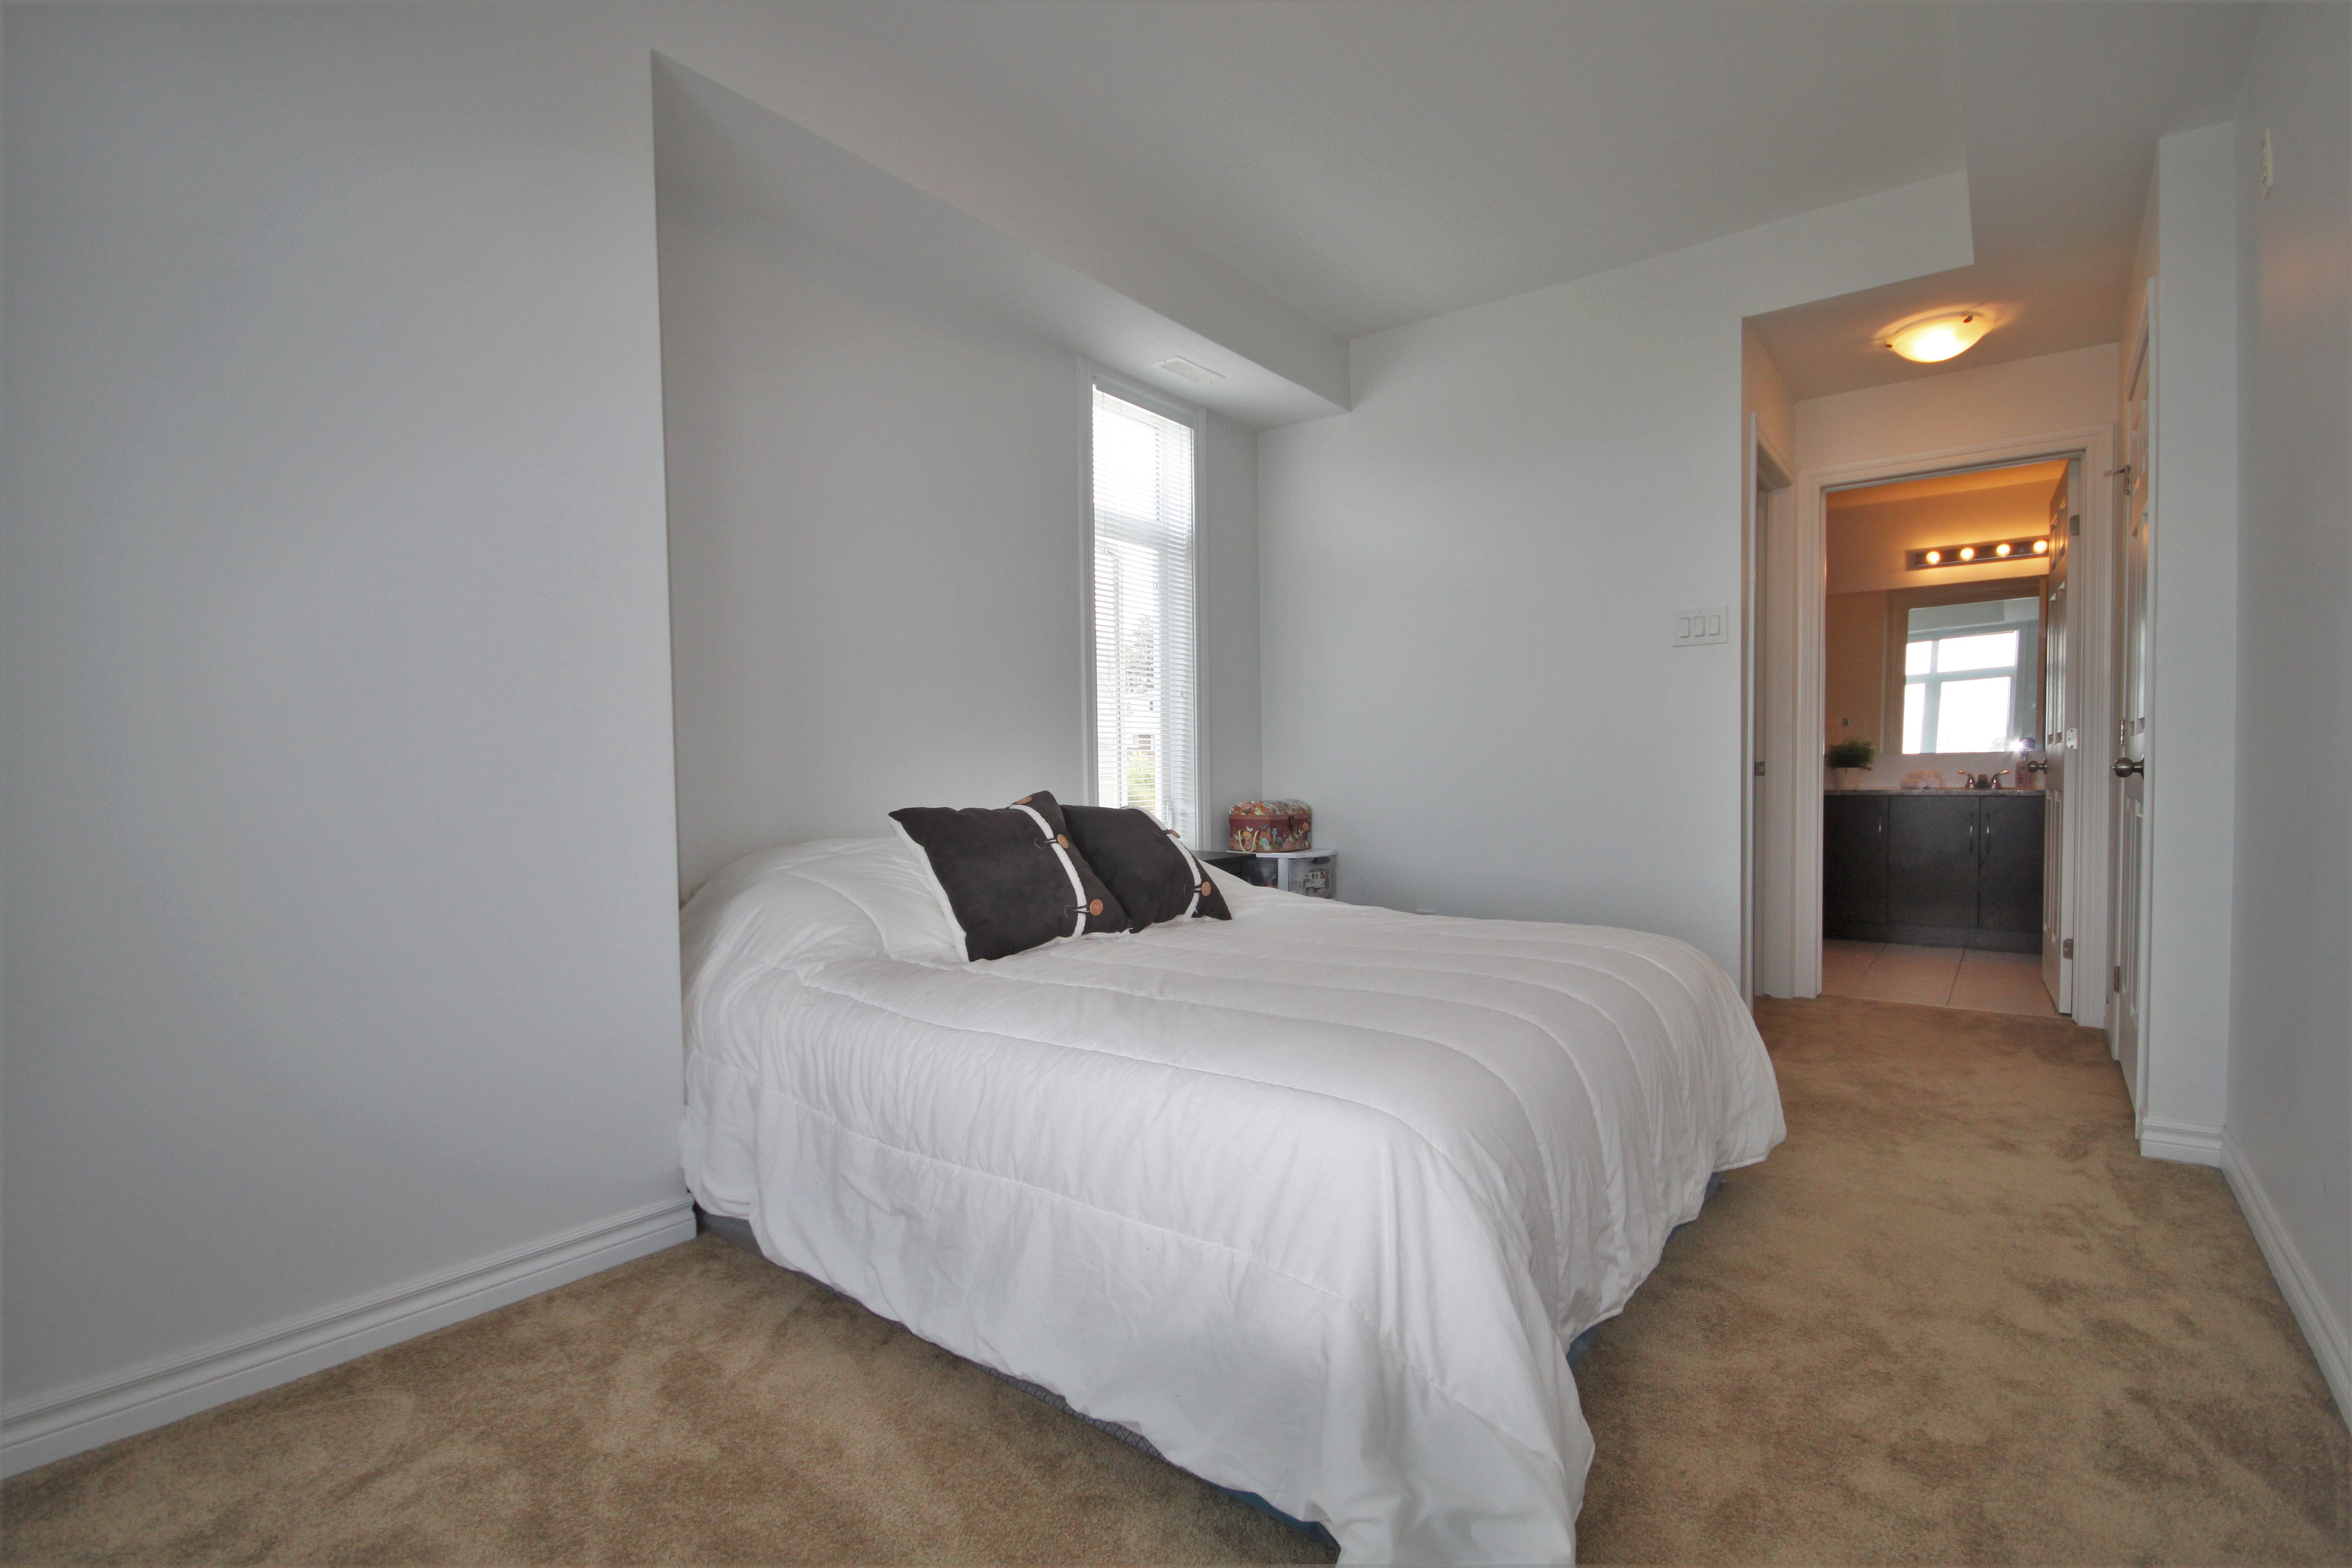 Large master bedroom with walkin closet and full ensuite bathroom.